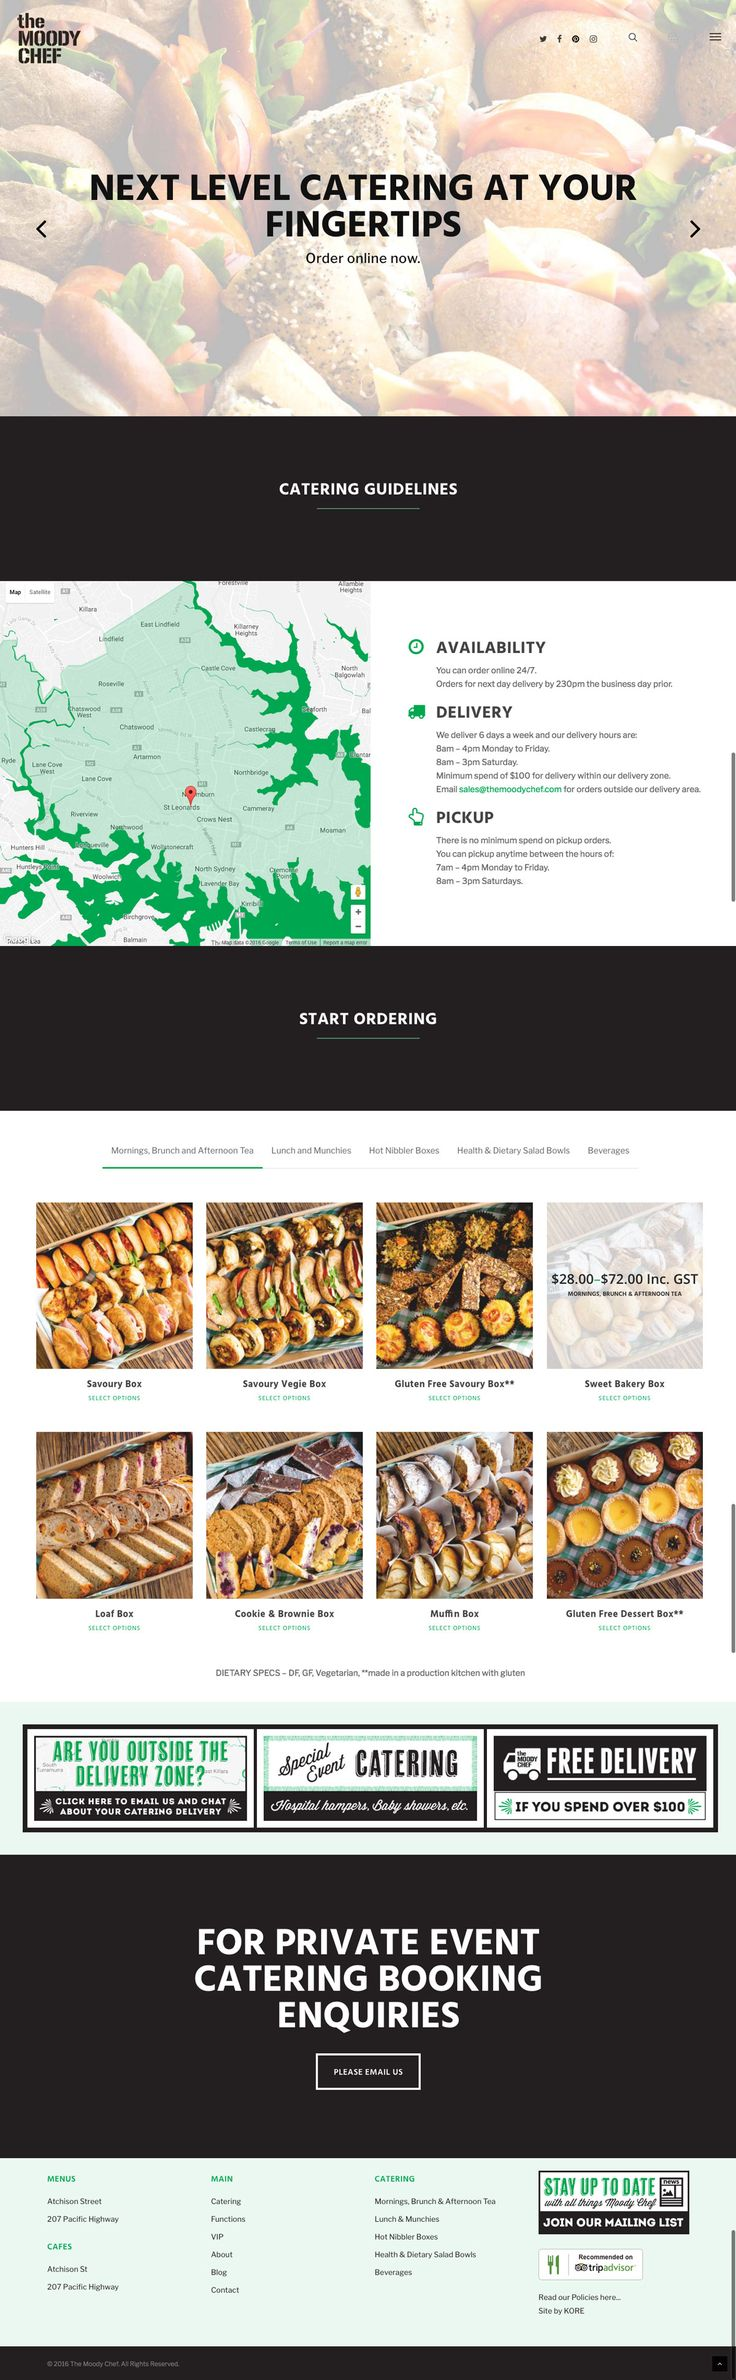 The Moody Chef's new responsive website by KORE (http://kore.digital/). Catering landing page view.